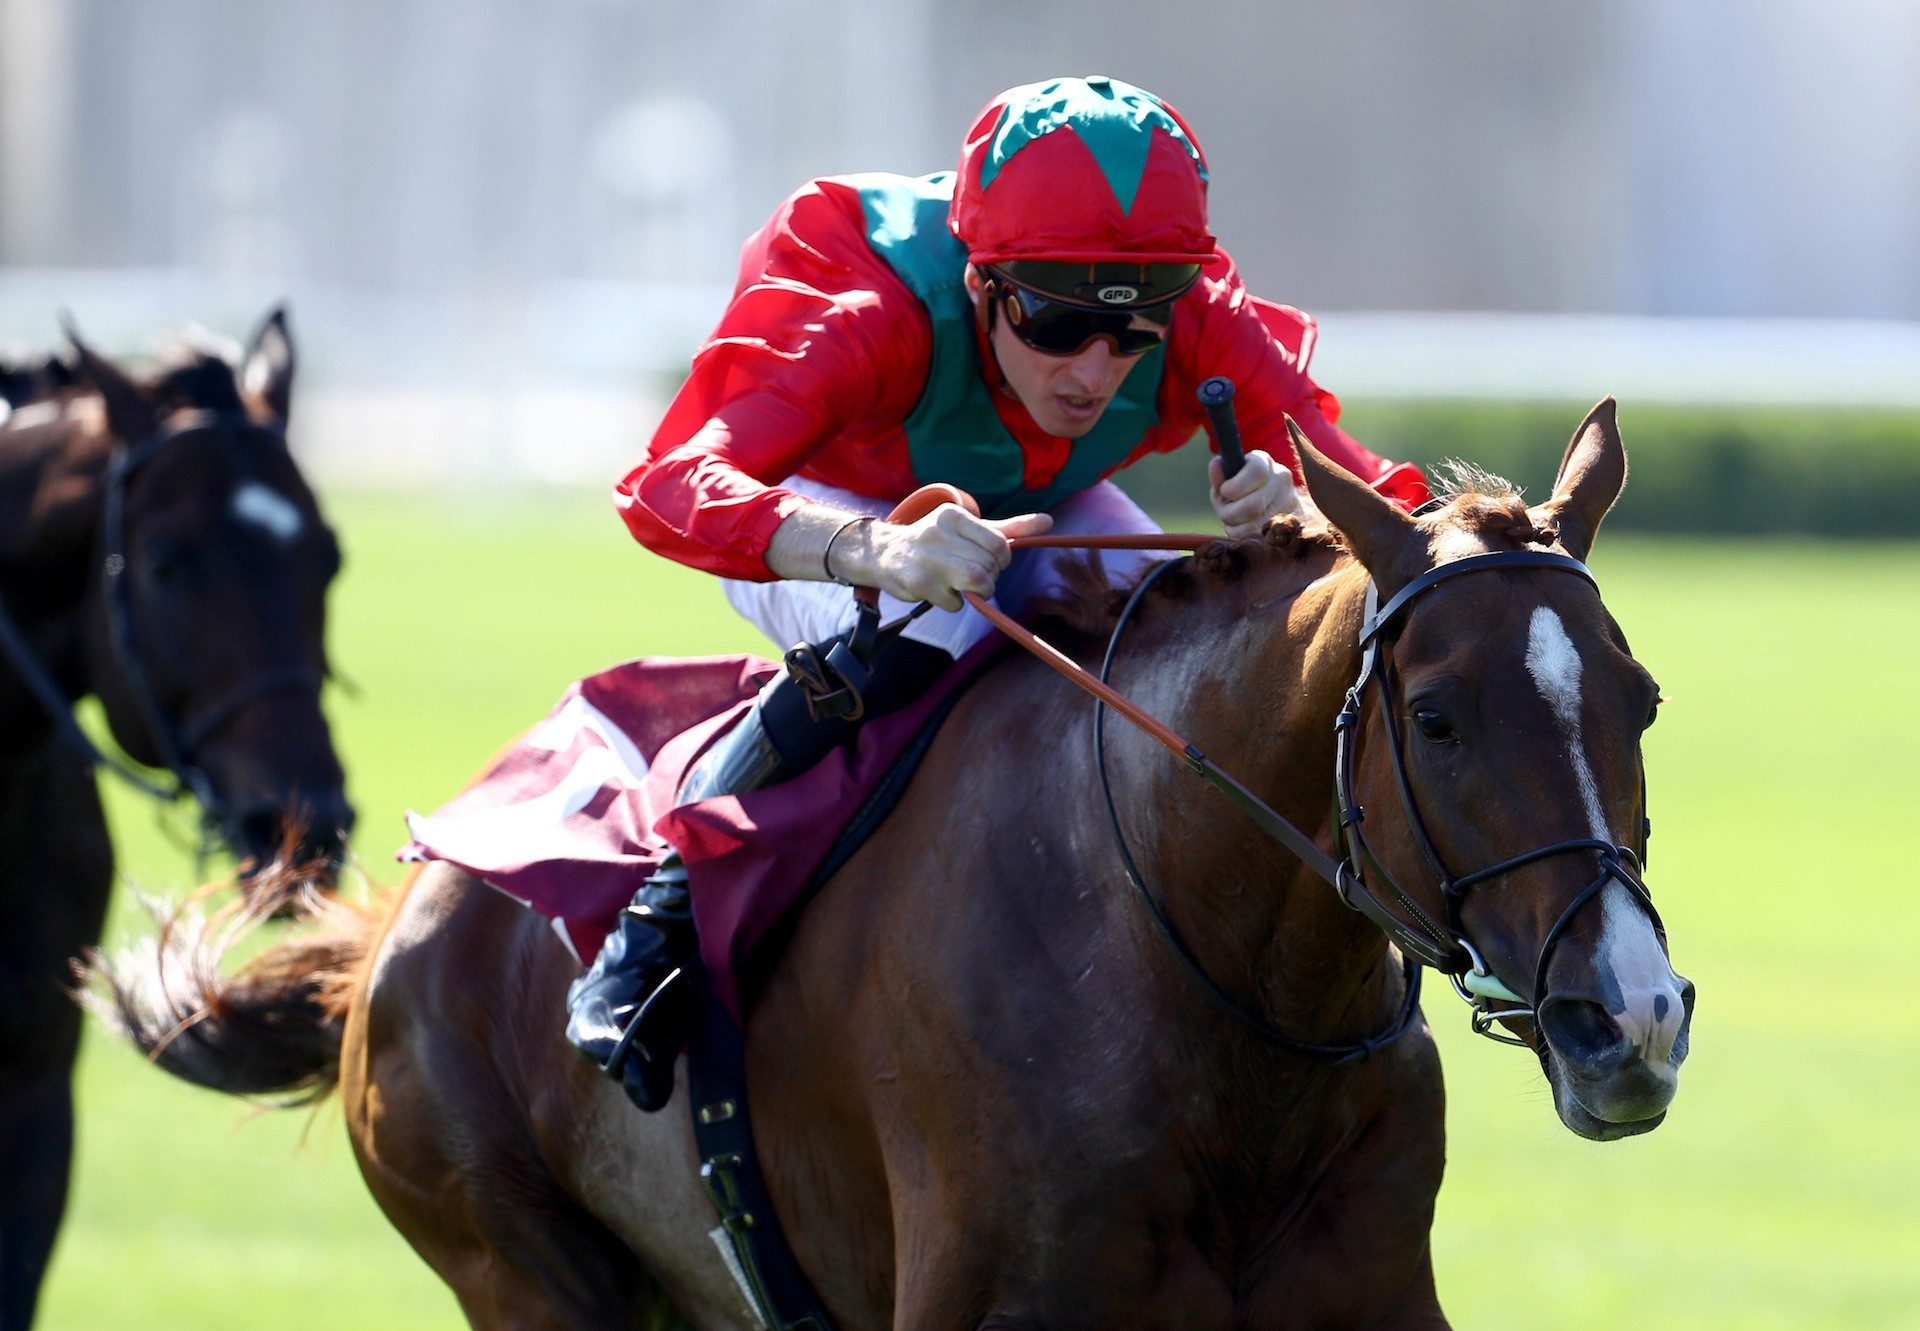 Waldgeist (Galileo) Wins The Gr.2 Prix Foy at Longchamp